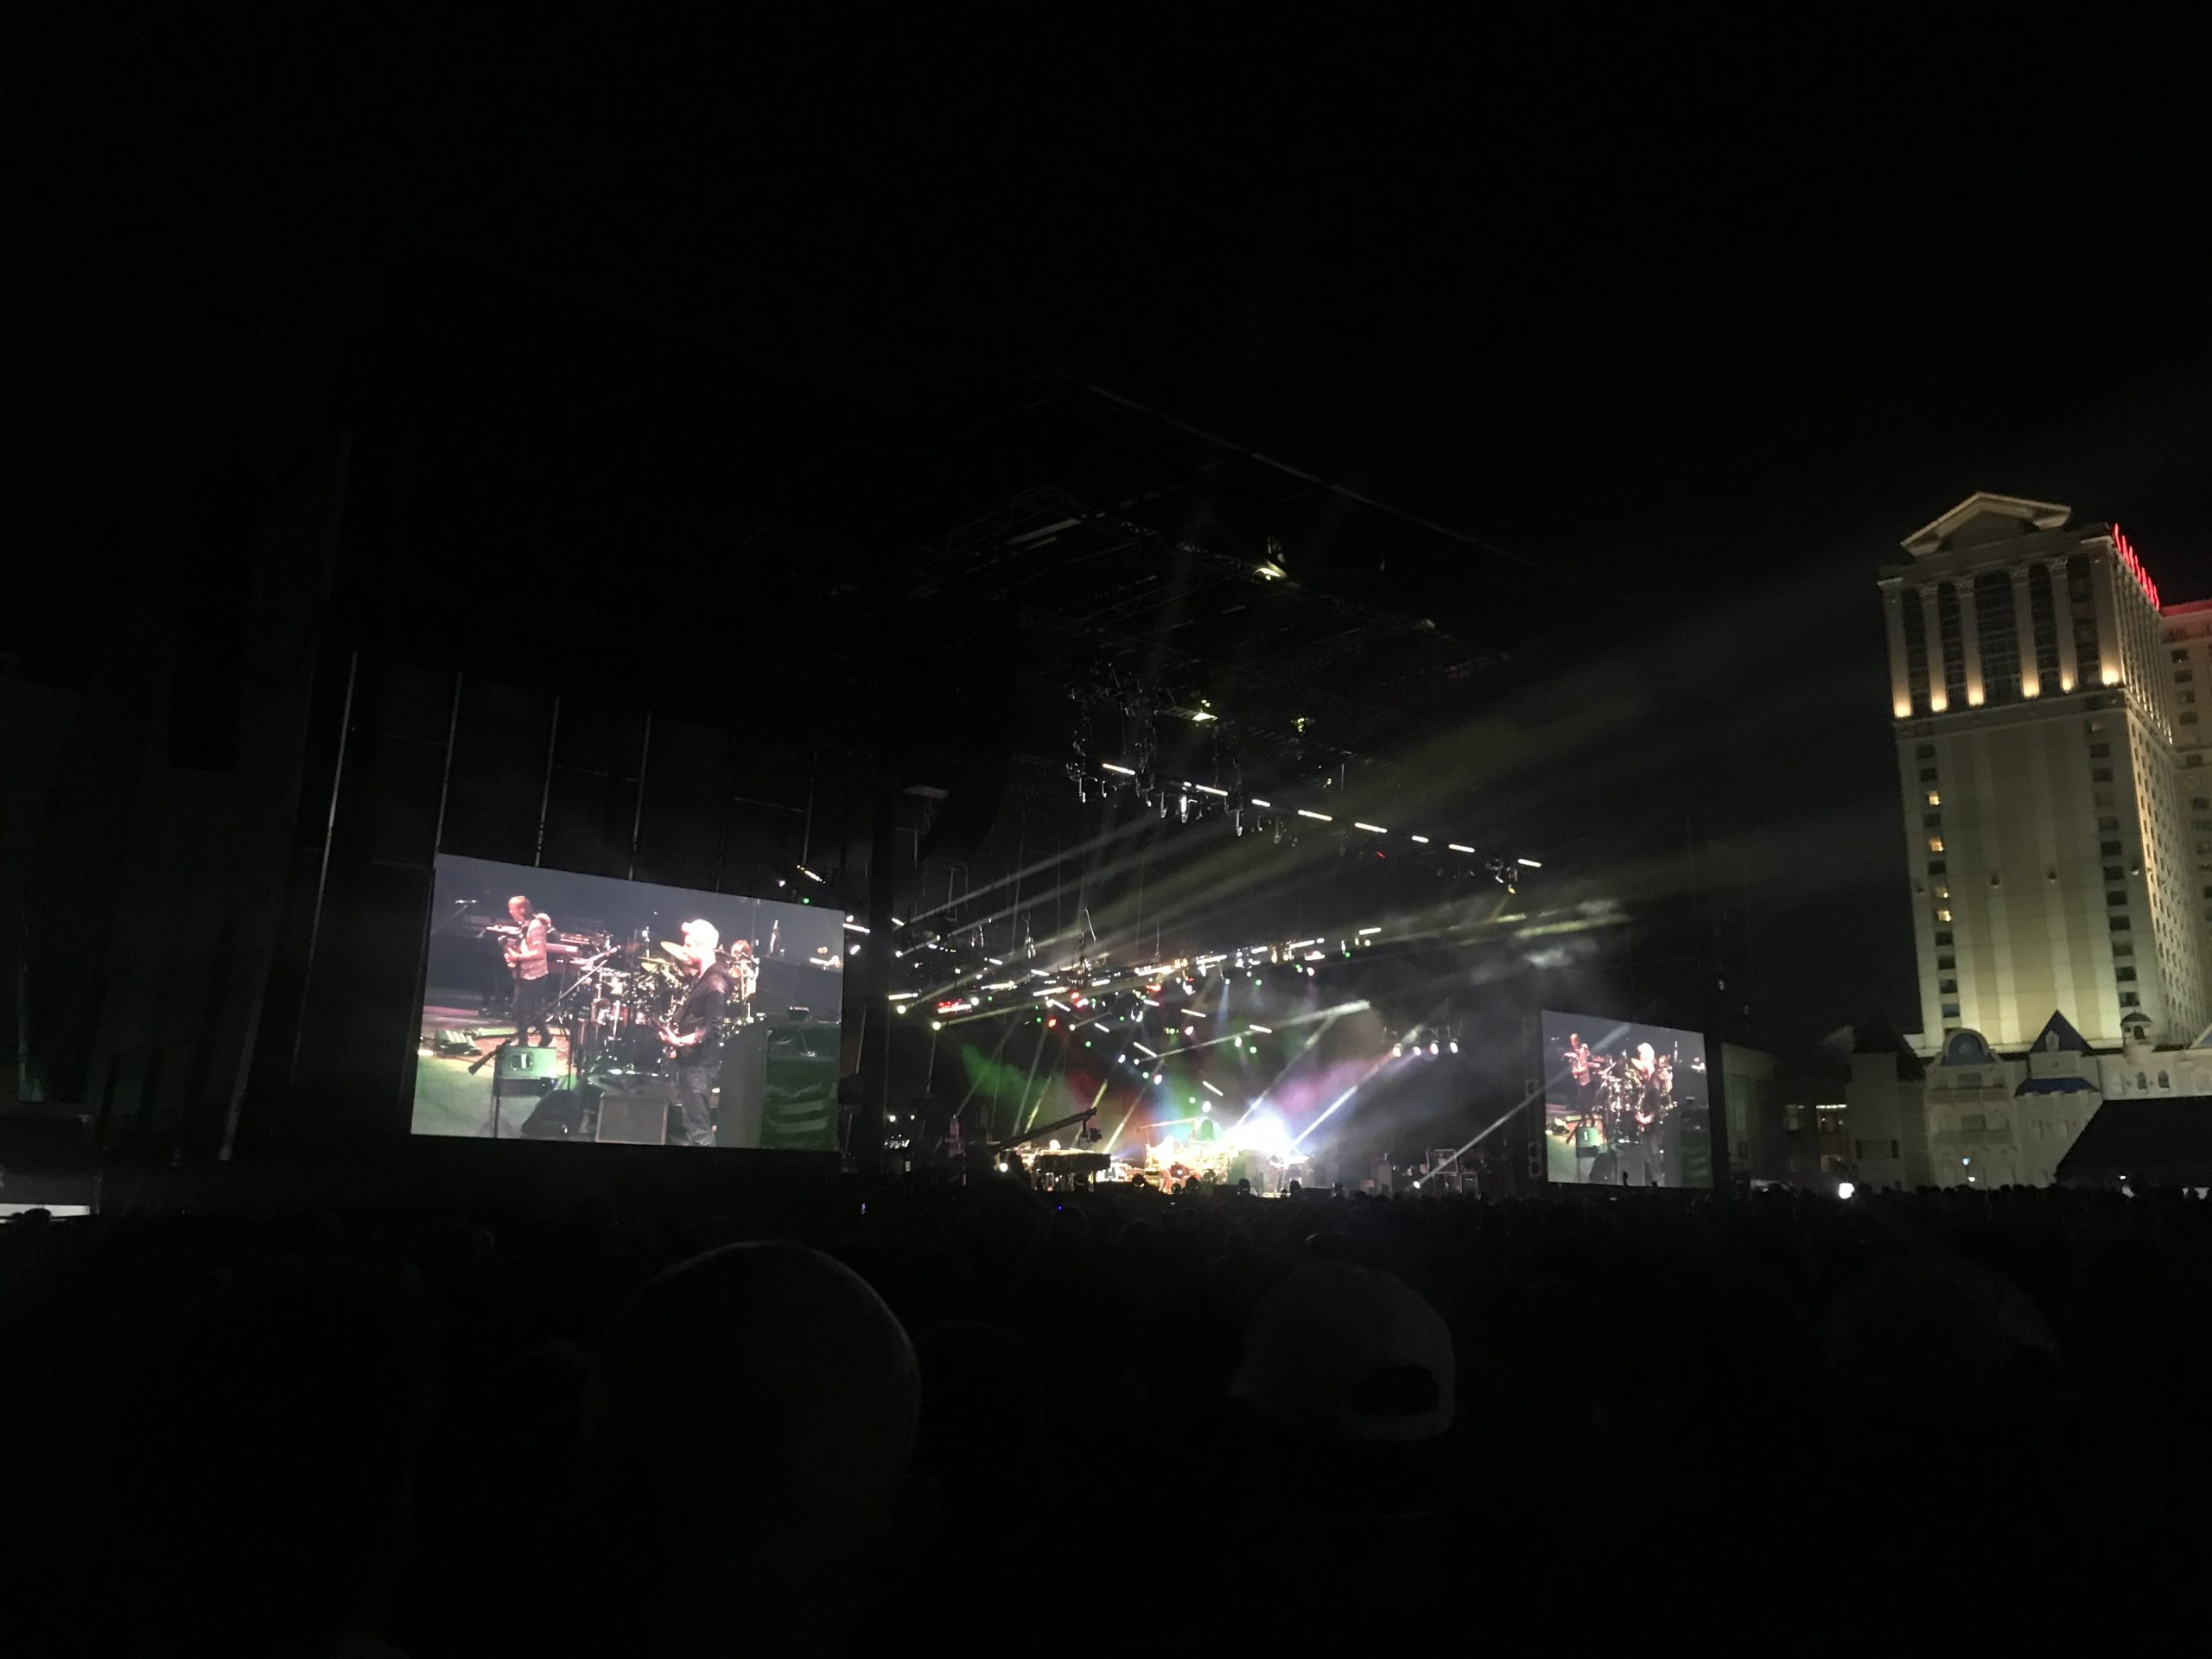 Phish closes out three nights on the beach in Atlantic City Sunday, Aug. 15, 2021 (Shaun R. Smith/The High Note).